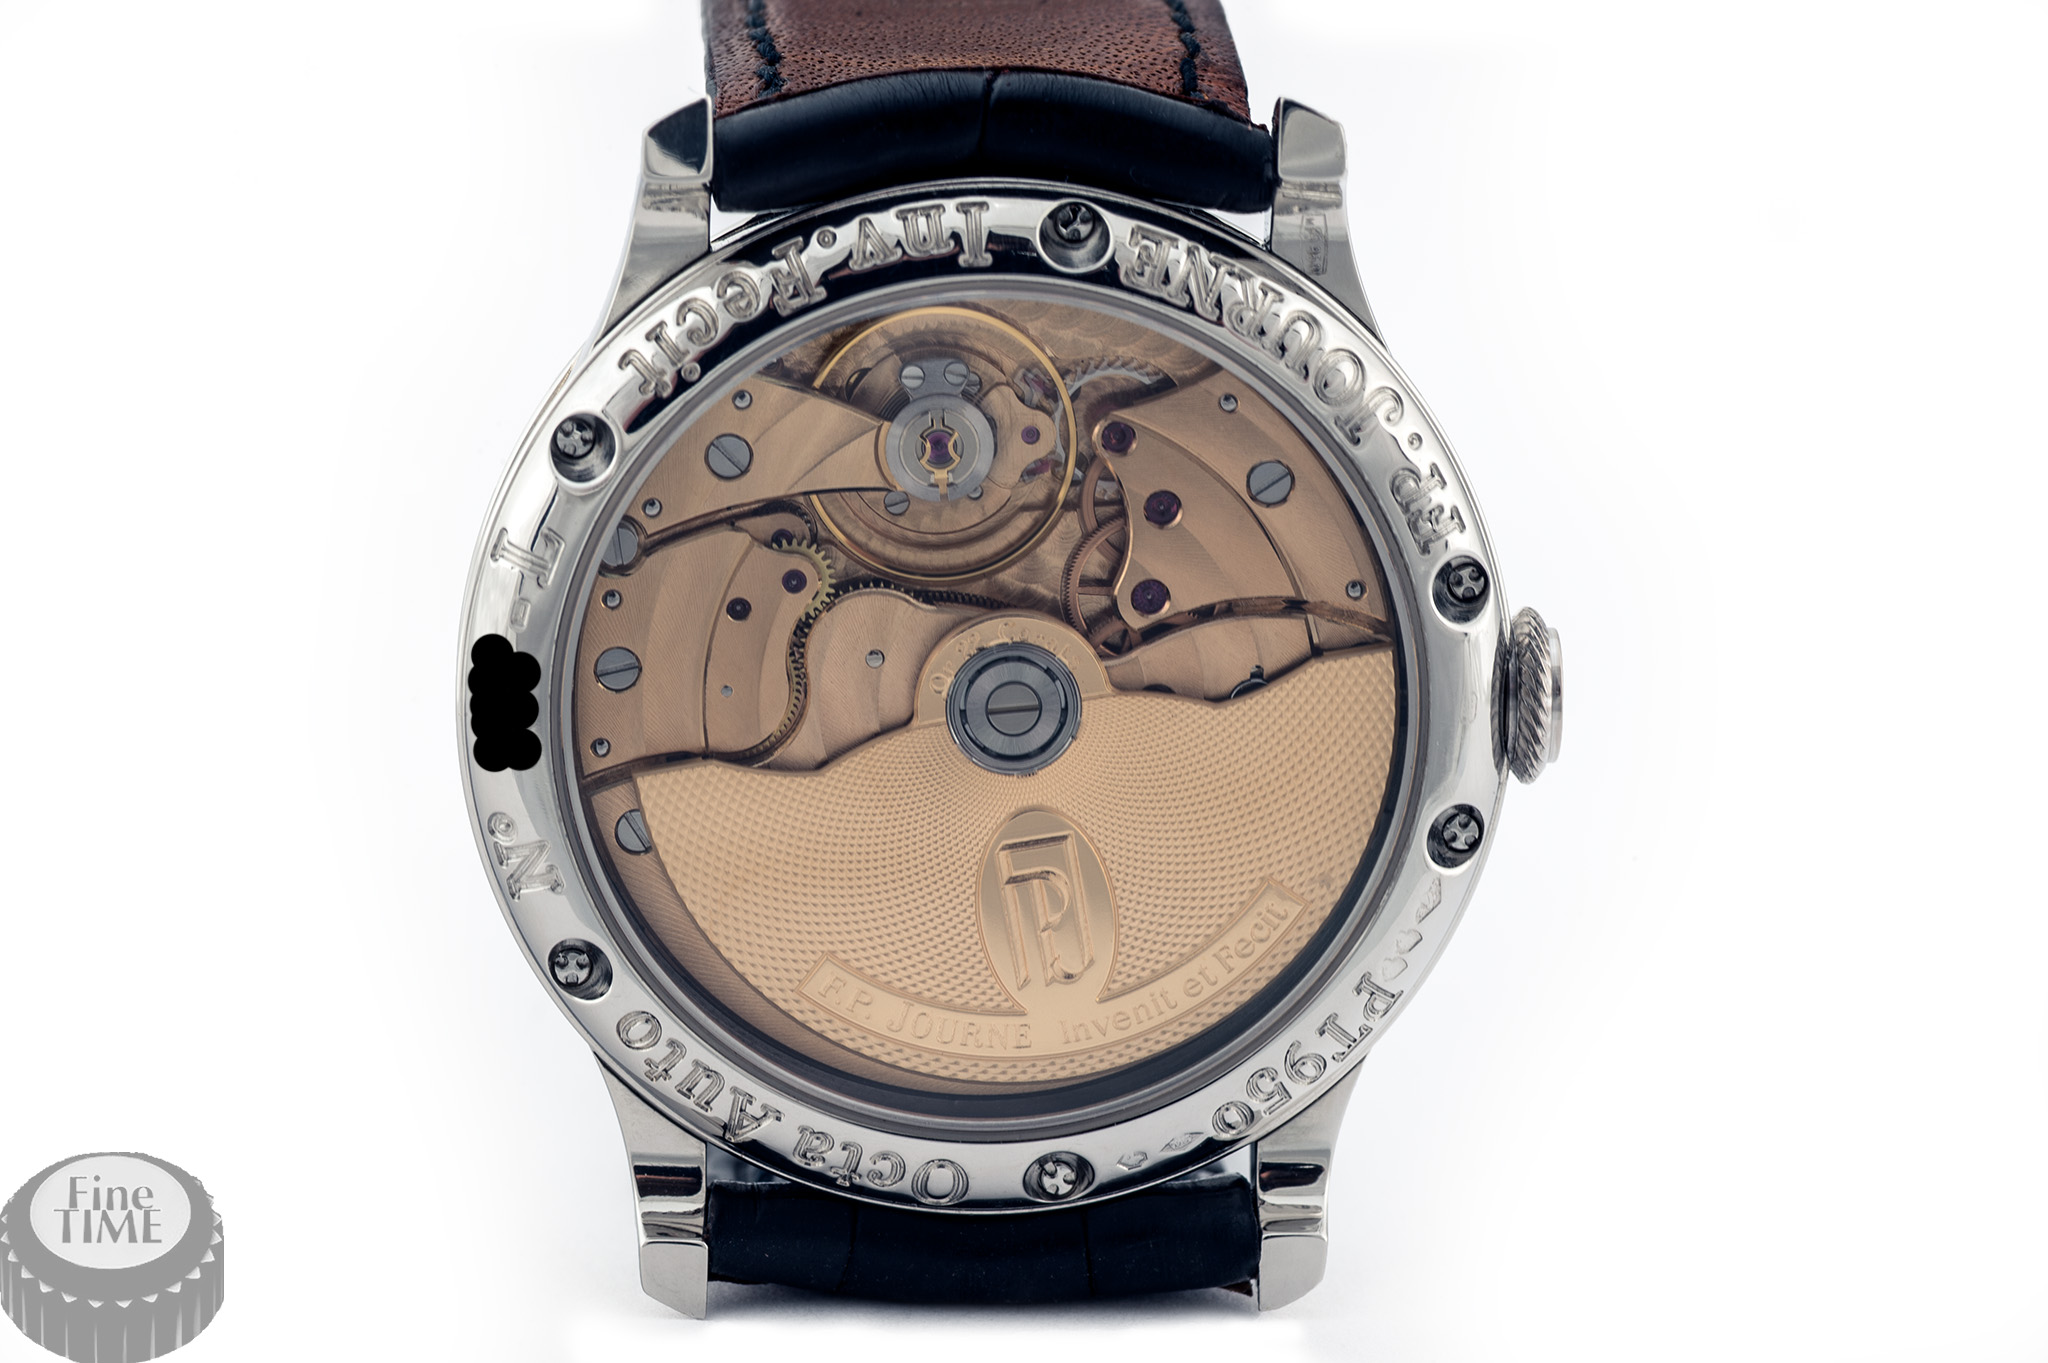 F.P. Journe Octa Lune platinum